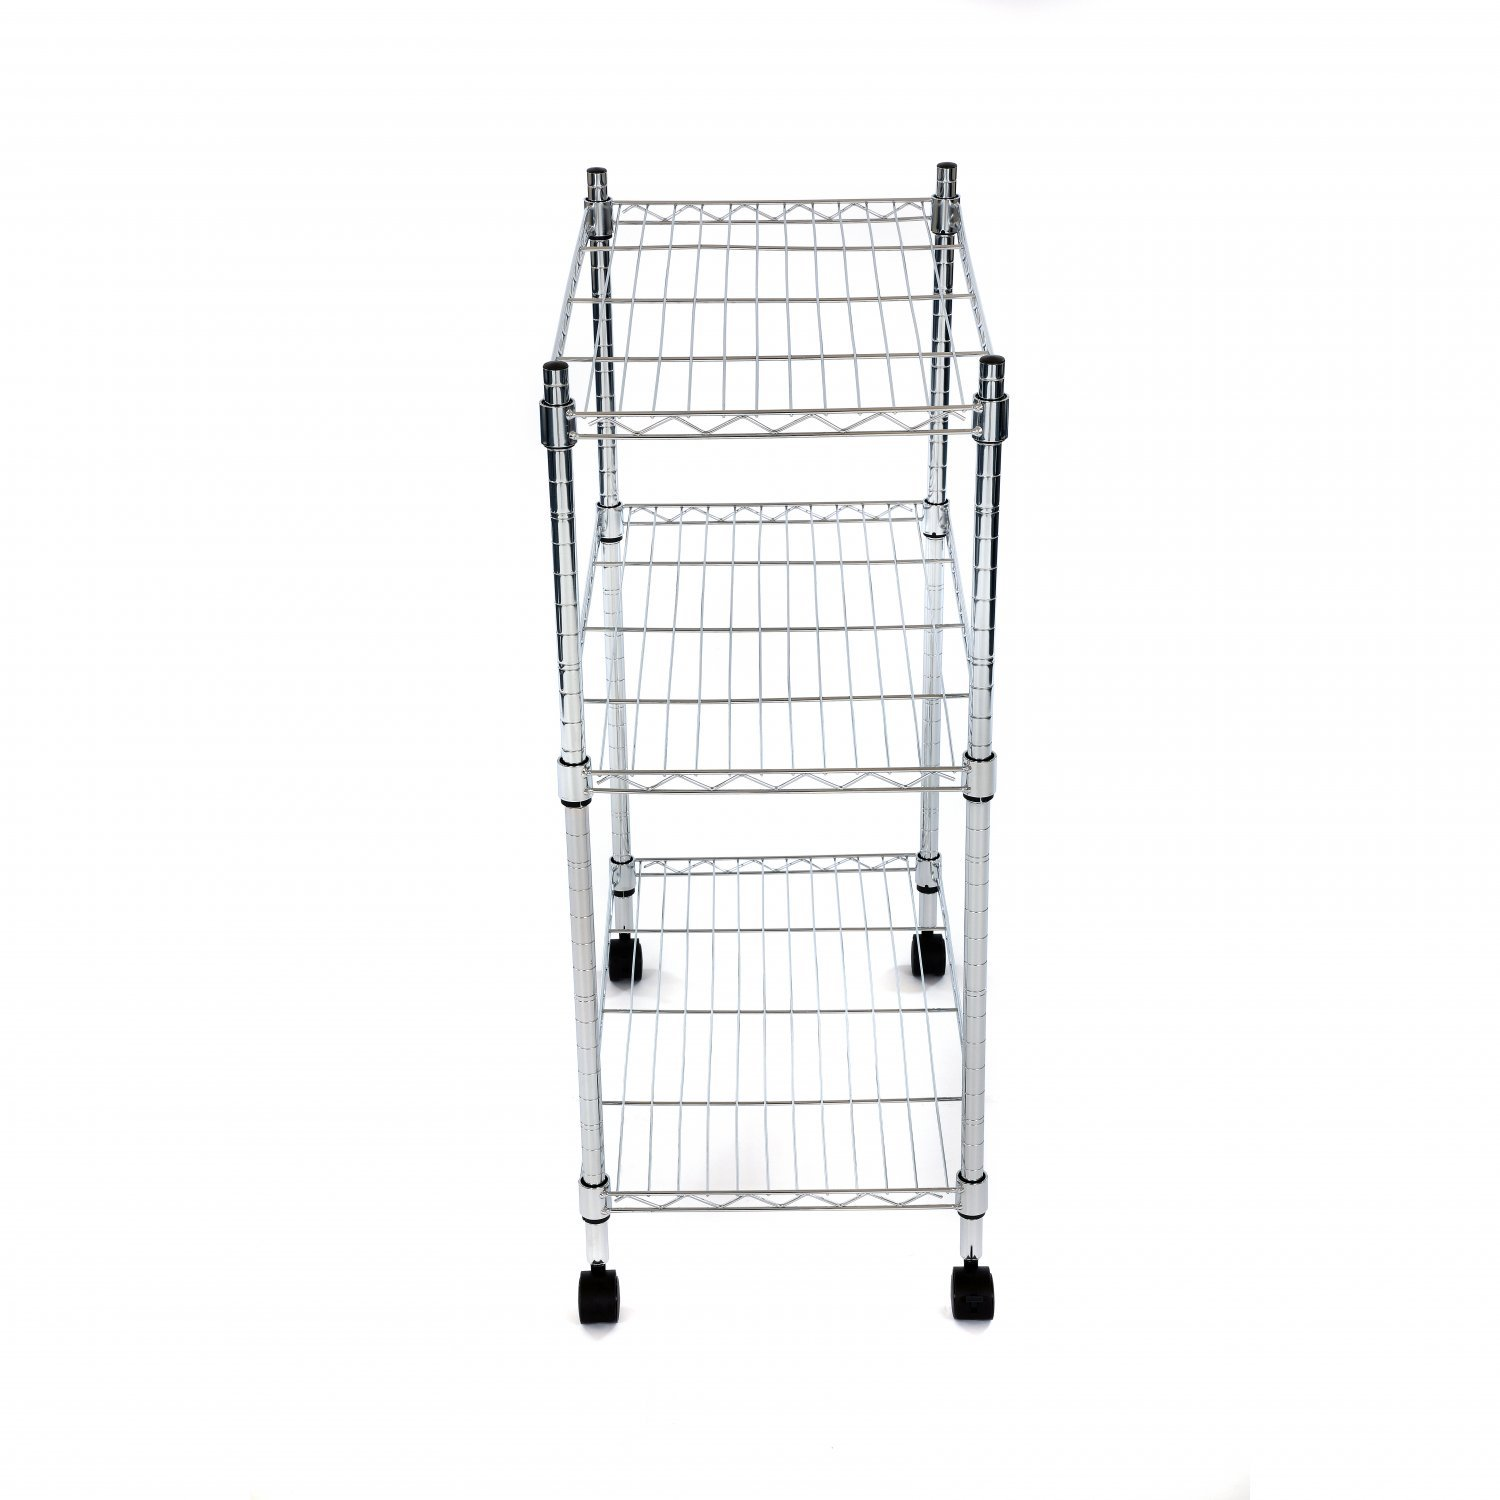 3 Tier Heavy Duty Steel Wire Rack Kitchen Storage Trolley